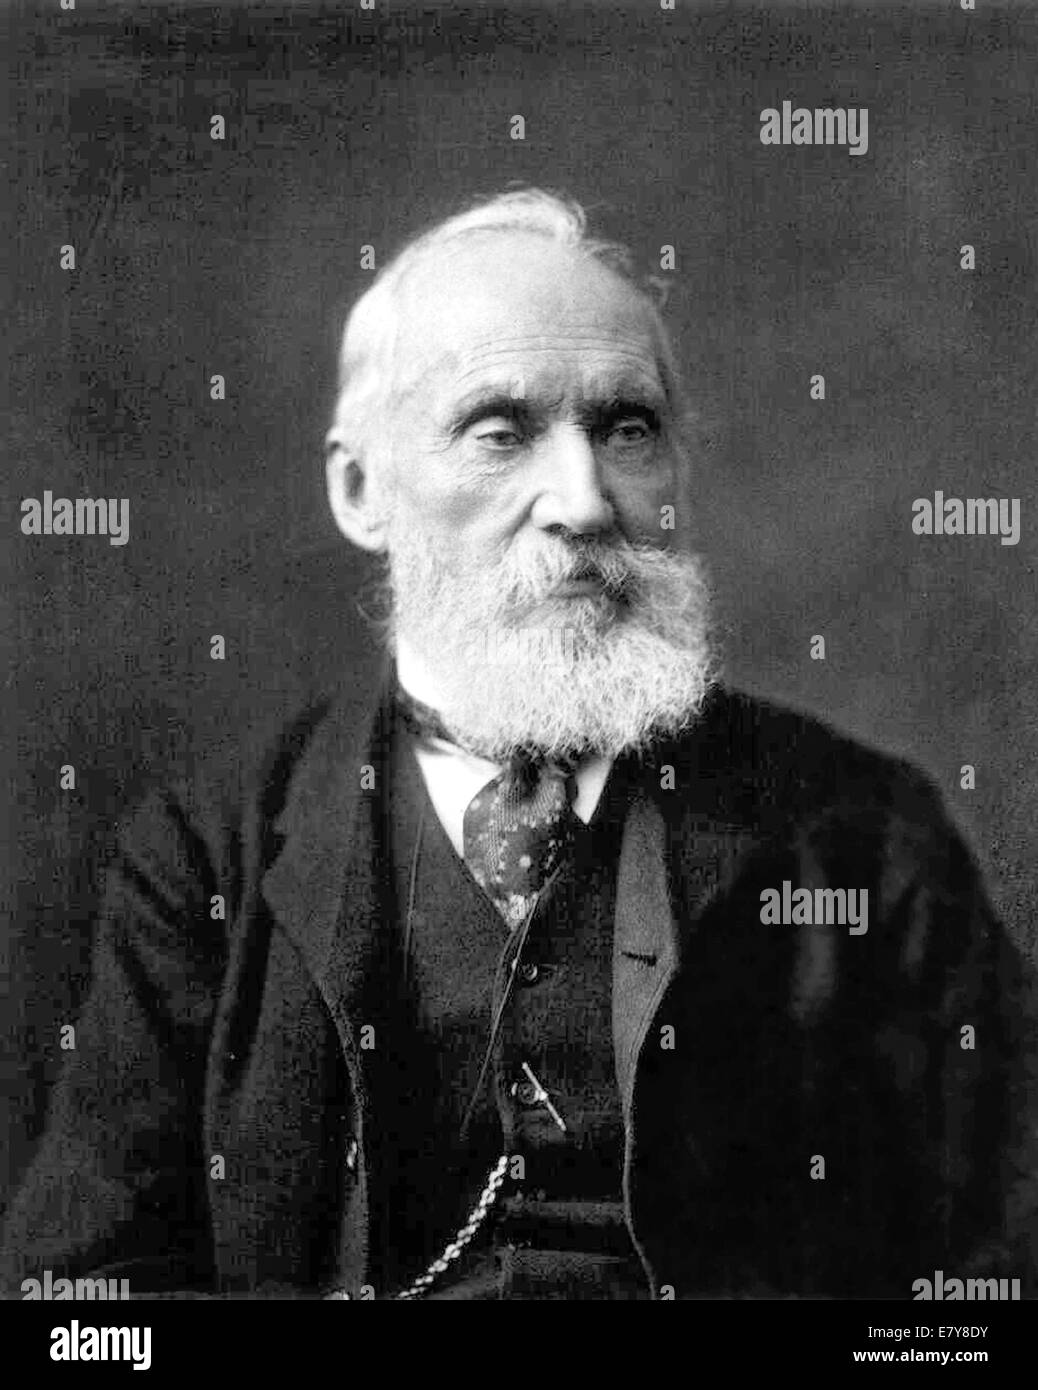 WILLIAM THOMSON, 1st Baron Kelvin (1824-1907) British mathematical phyicist - Stock Image